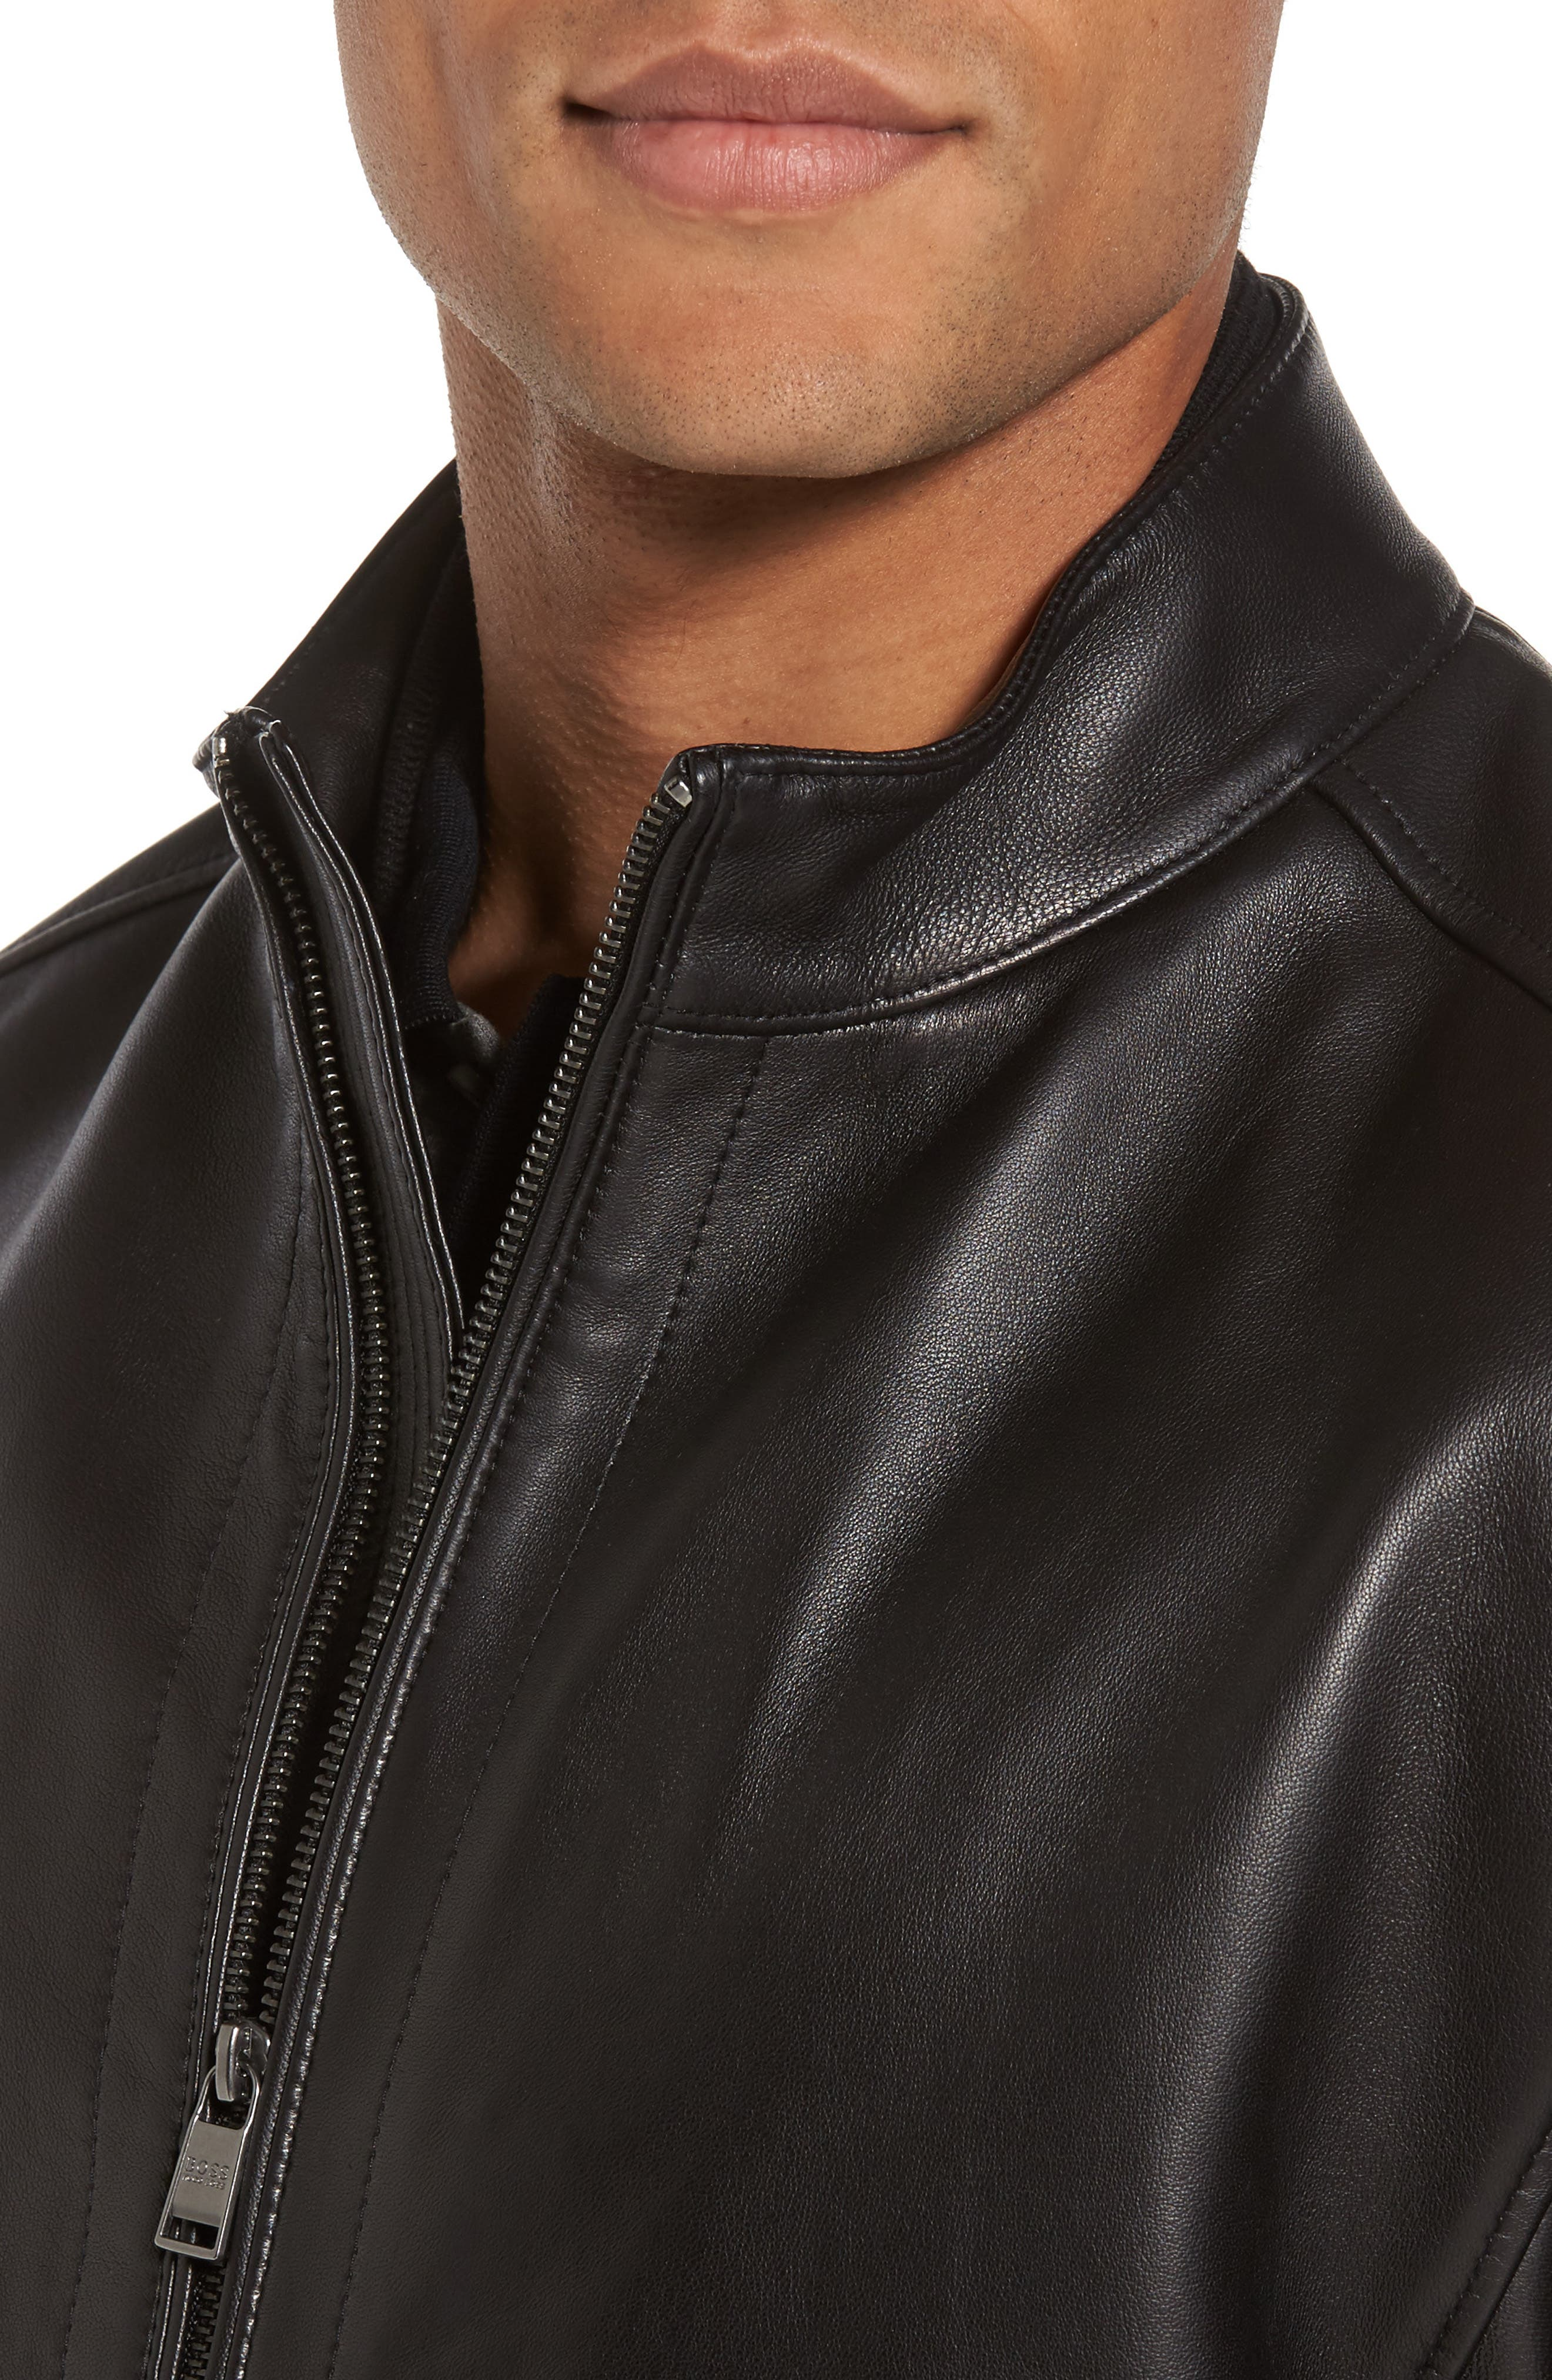 Collar Inset Leather Jacket,                             Alternate thumbnail 4, color,                             001